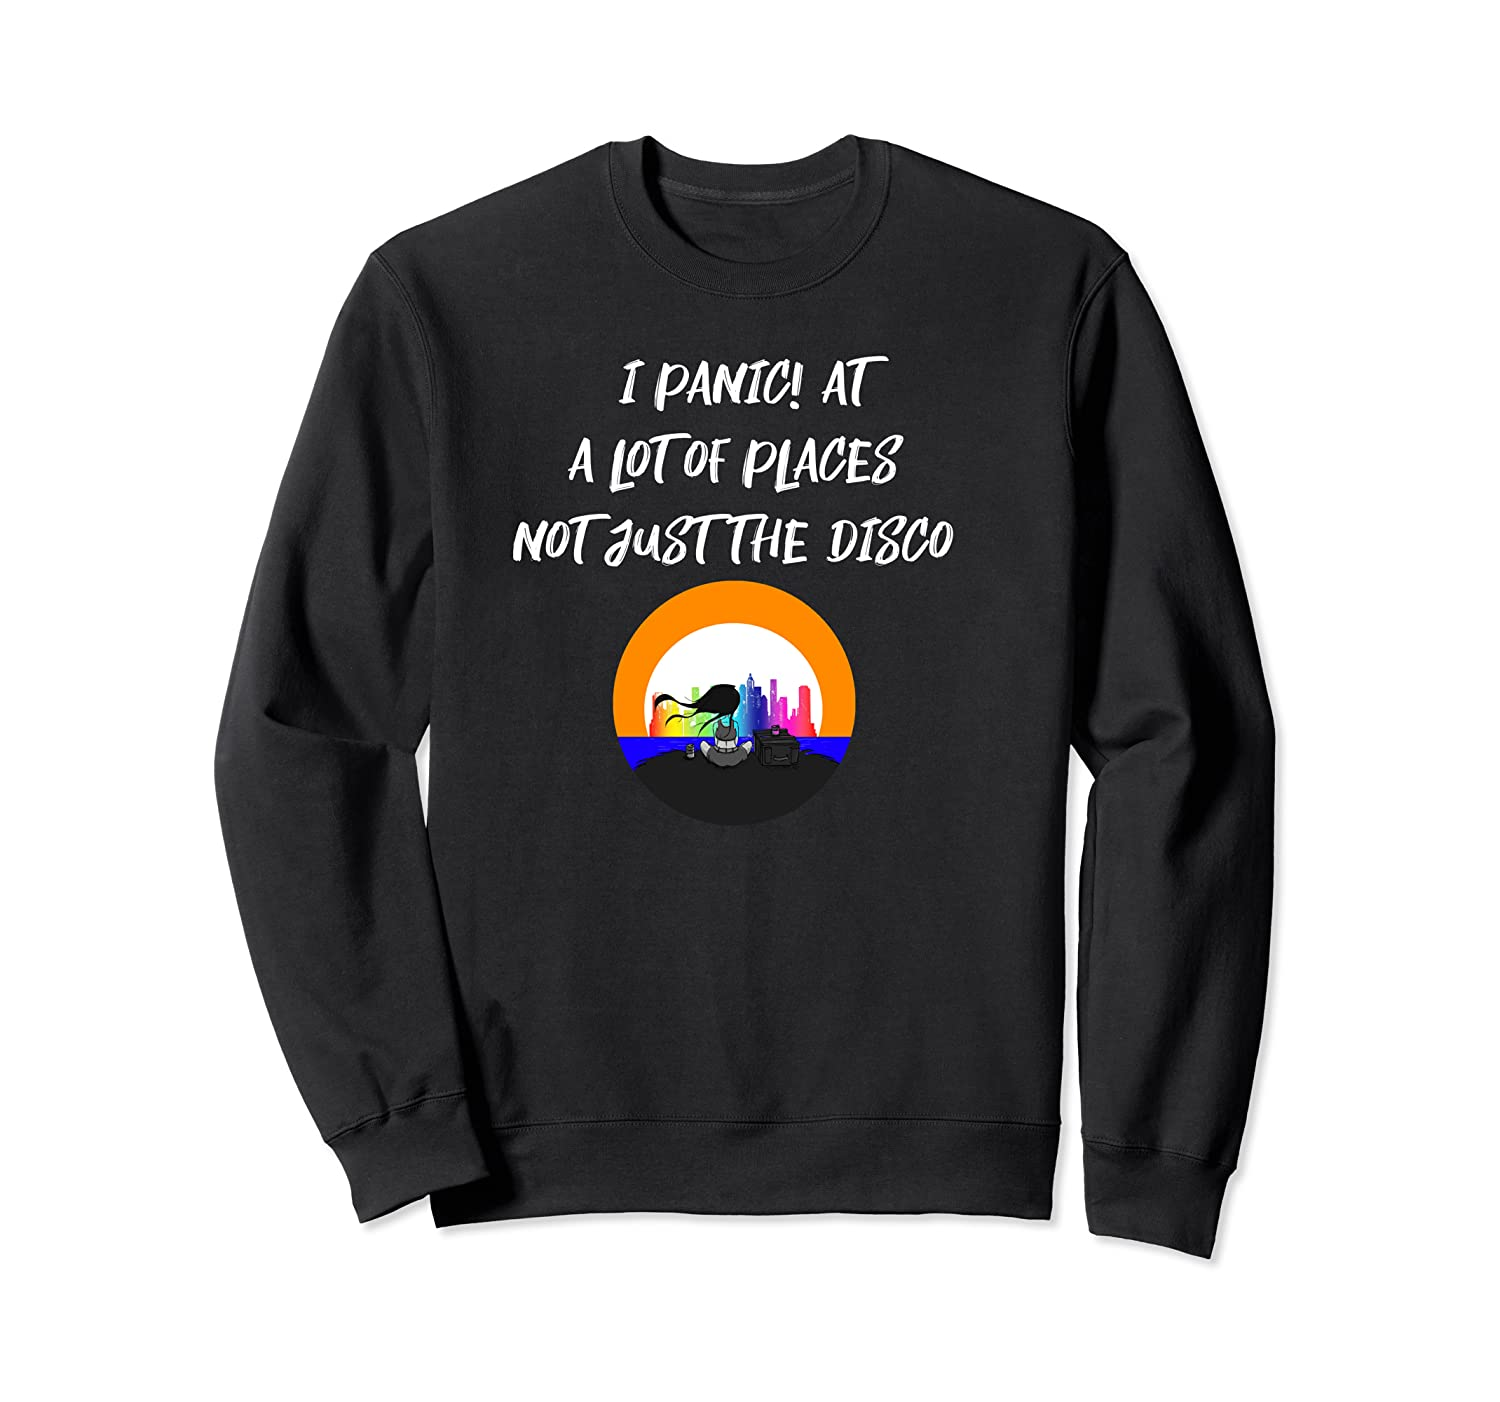 Panic At A Lot Of Places Not Just The Disco Shirts Crewneck Sweater